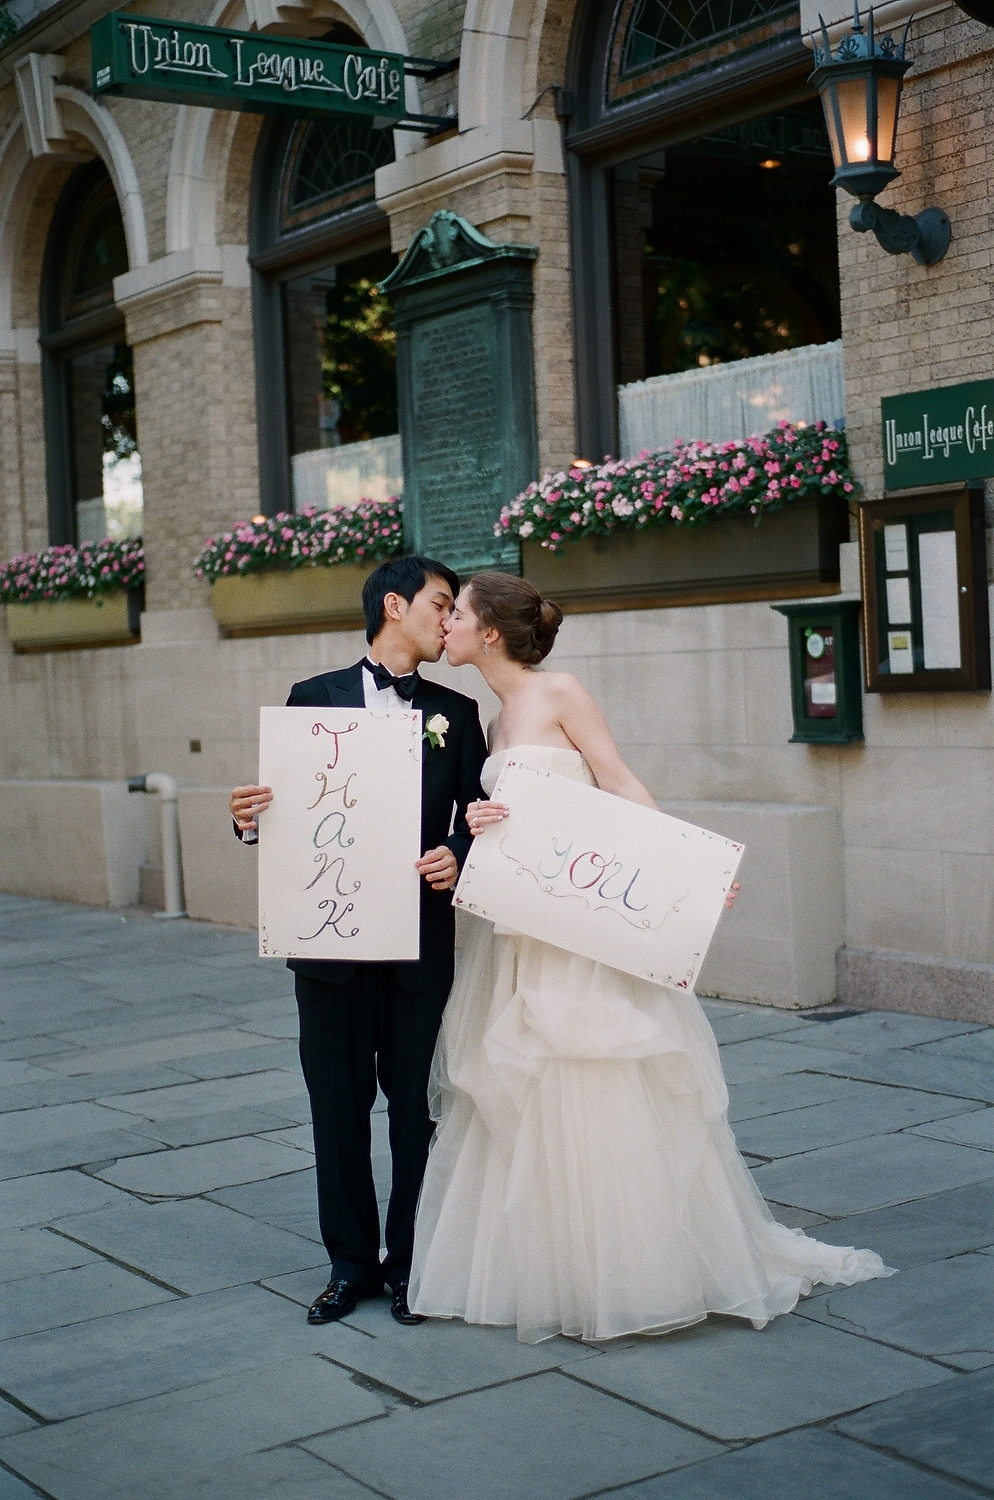 yale wedding couple kissing outside union league cafe wendy g photography